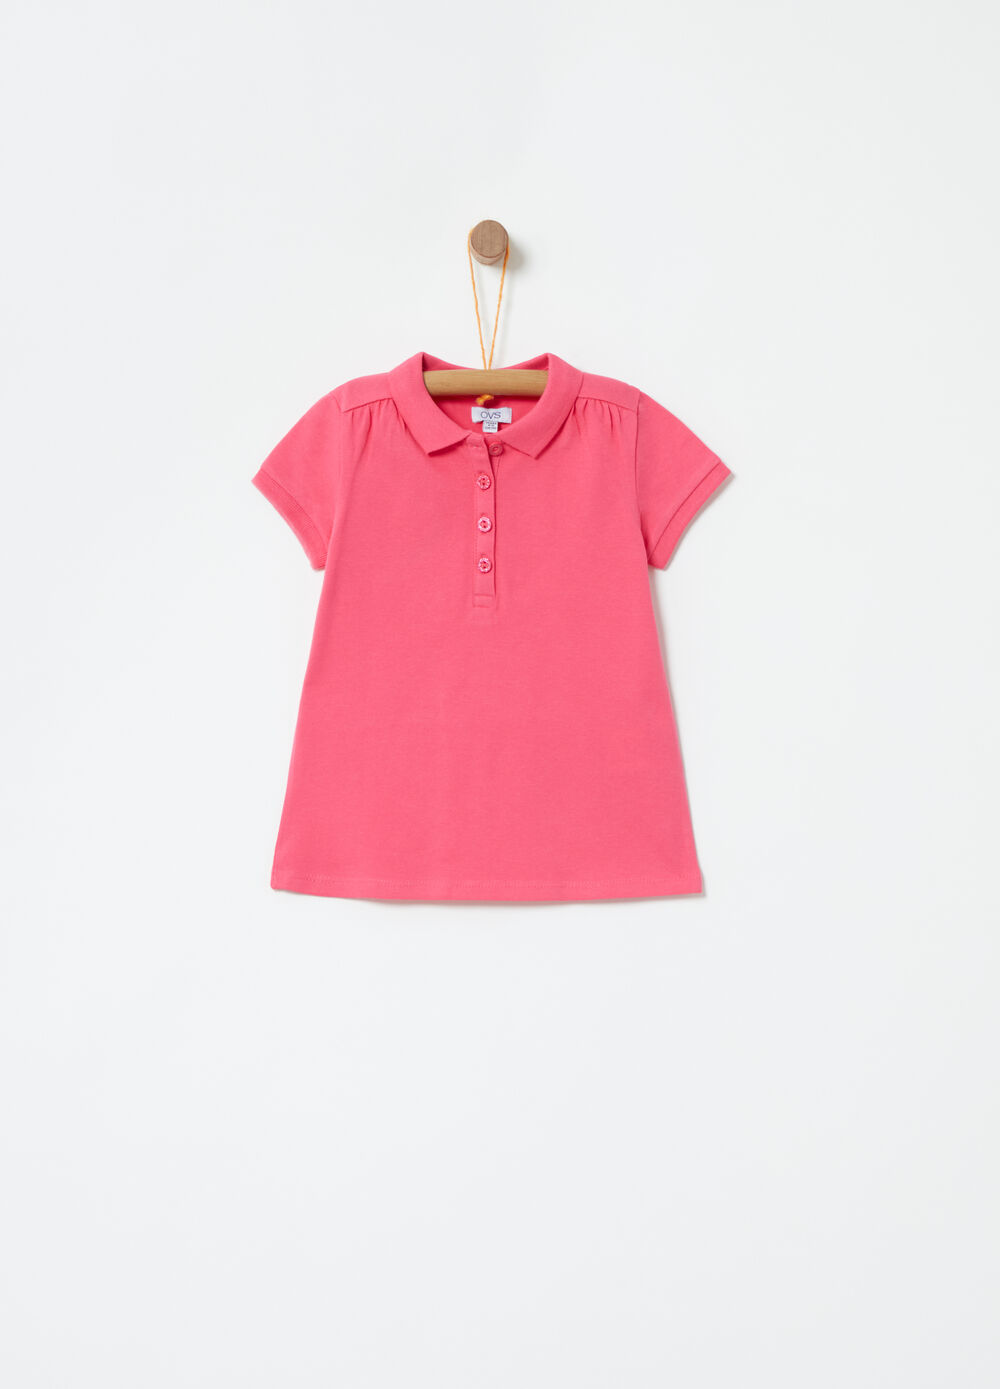 Cotton piquet knitted polo shirt with collar